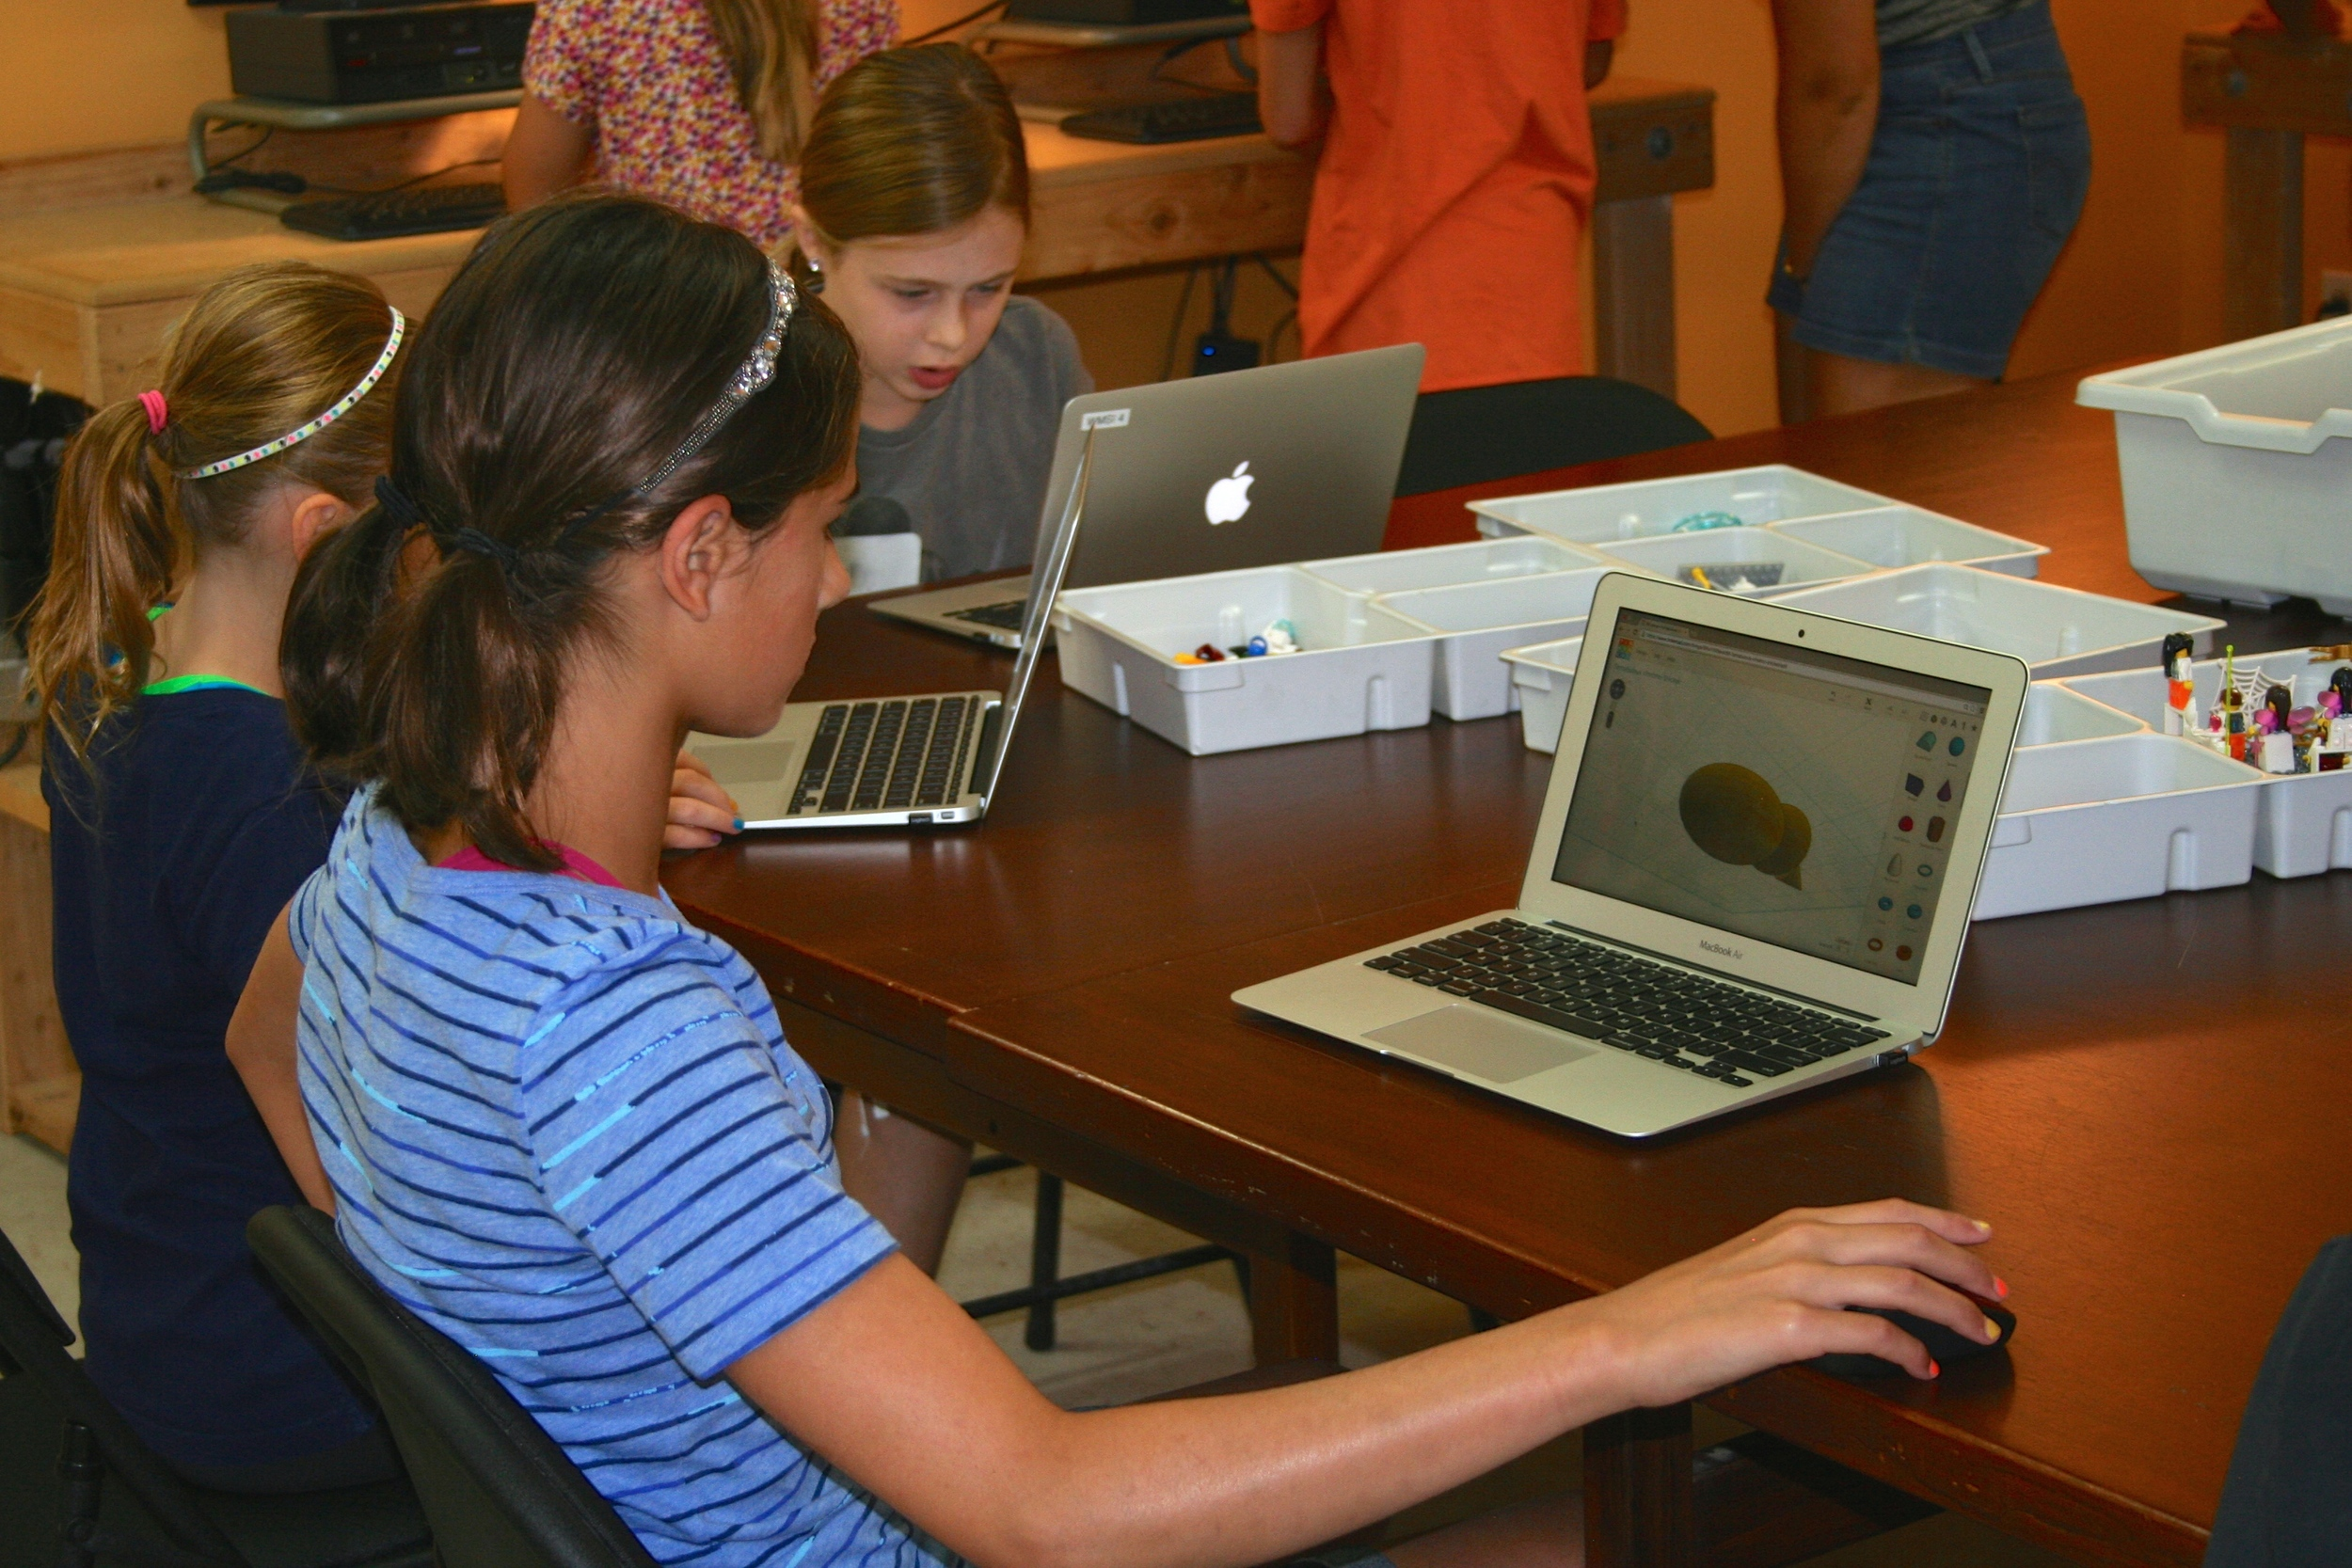 Tinkercad:  Engineering skills are right at your fingertips when designing 3D object in this free software.